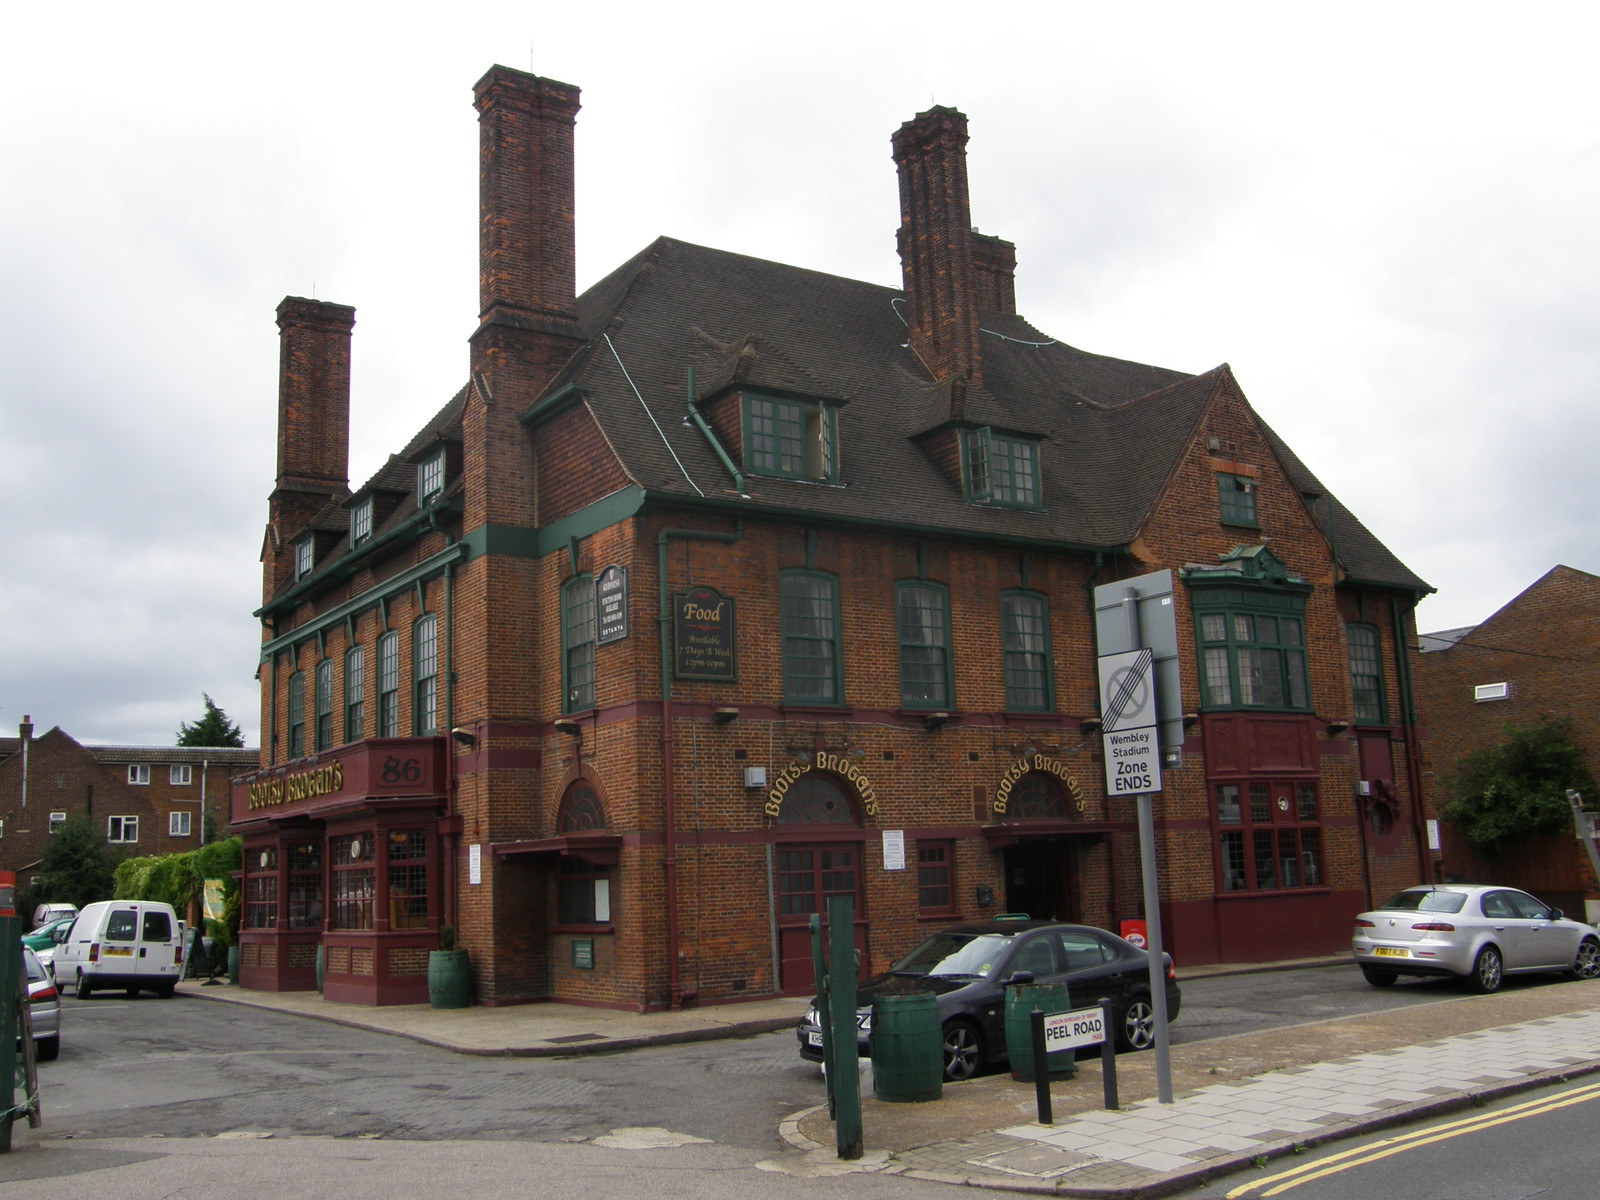 The Bootsy Brogans  pub on the corner of Peel Road and East Lane